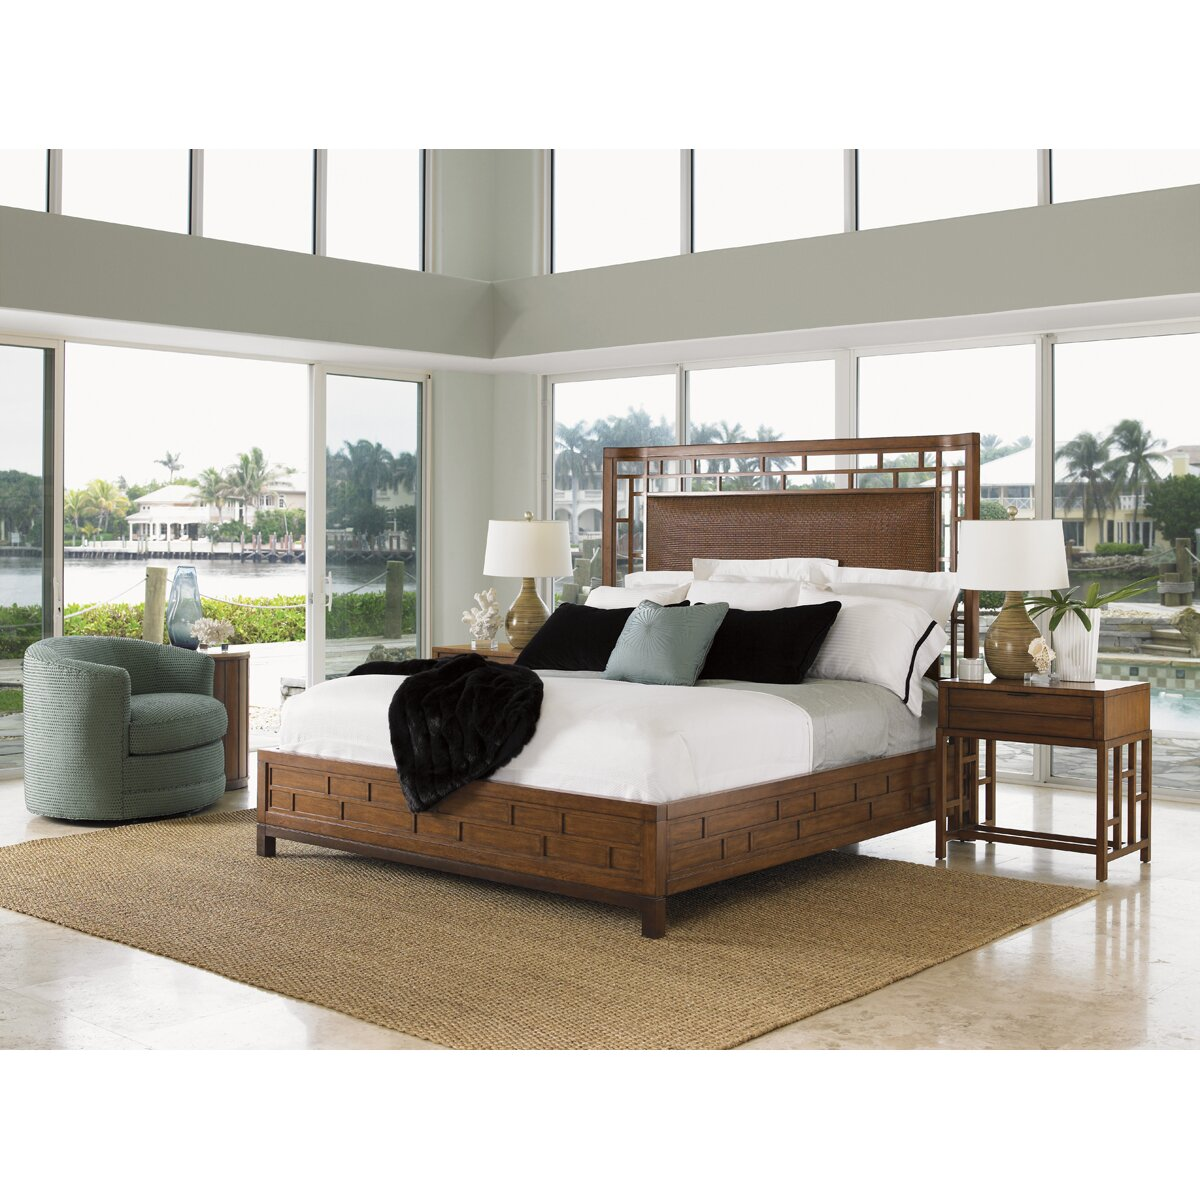 Tommy Bahama Furniture: Tommy Bahama Home Ocean Club Platform Bed & Reviews